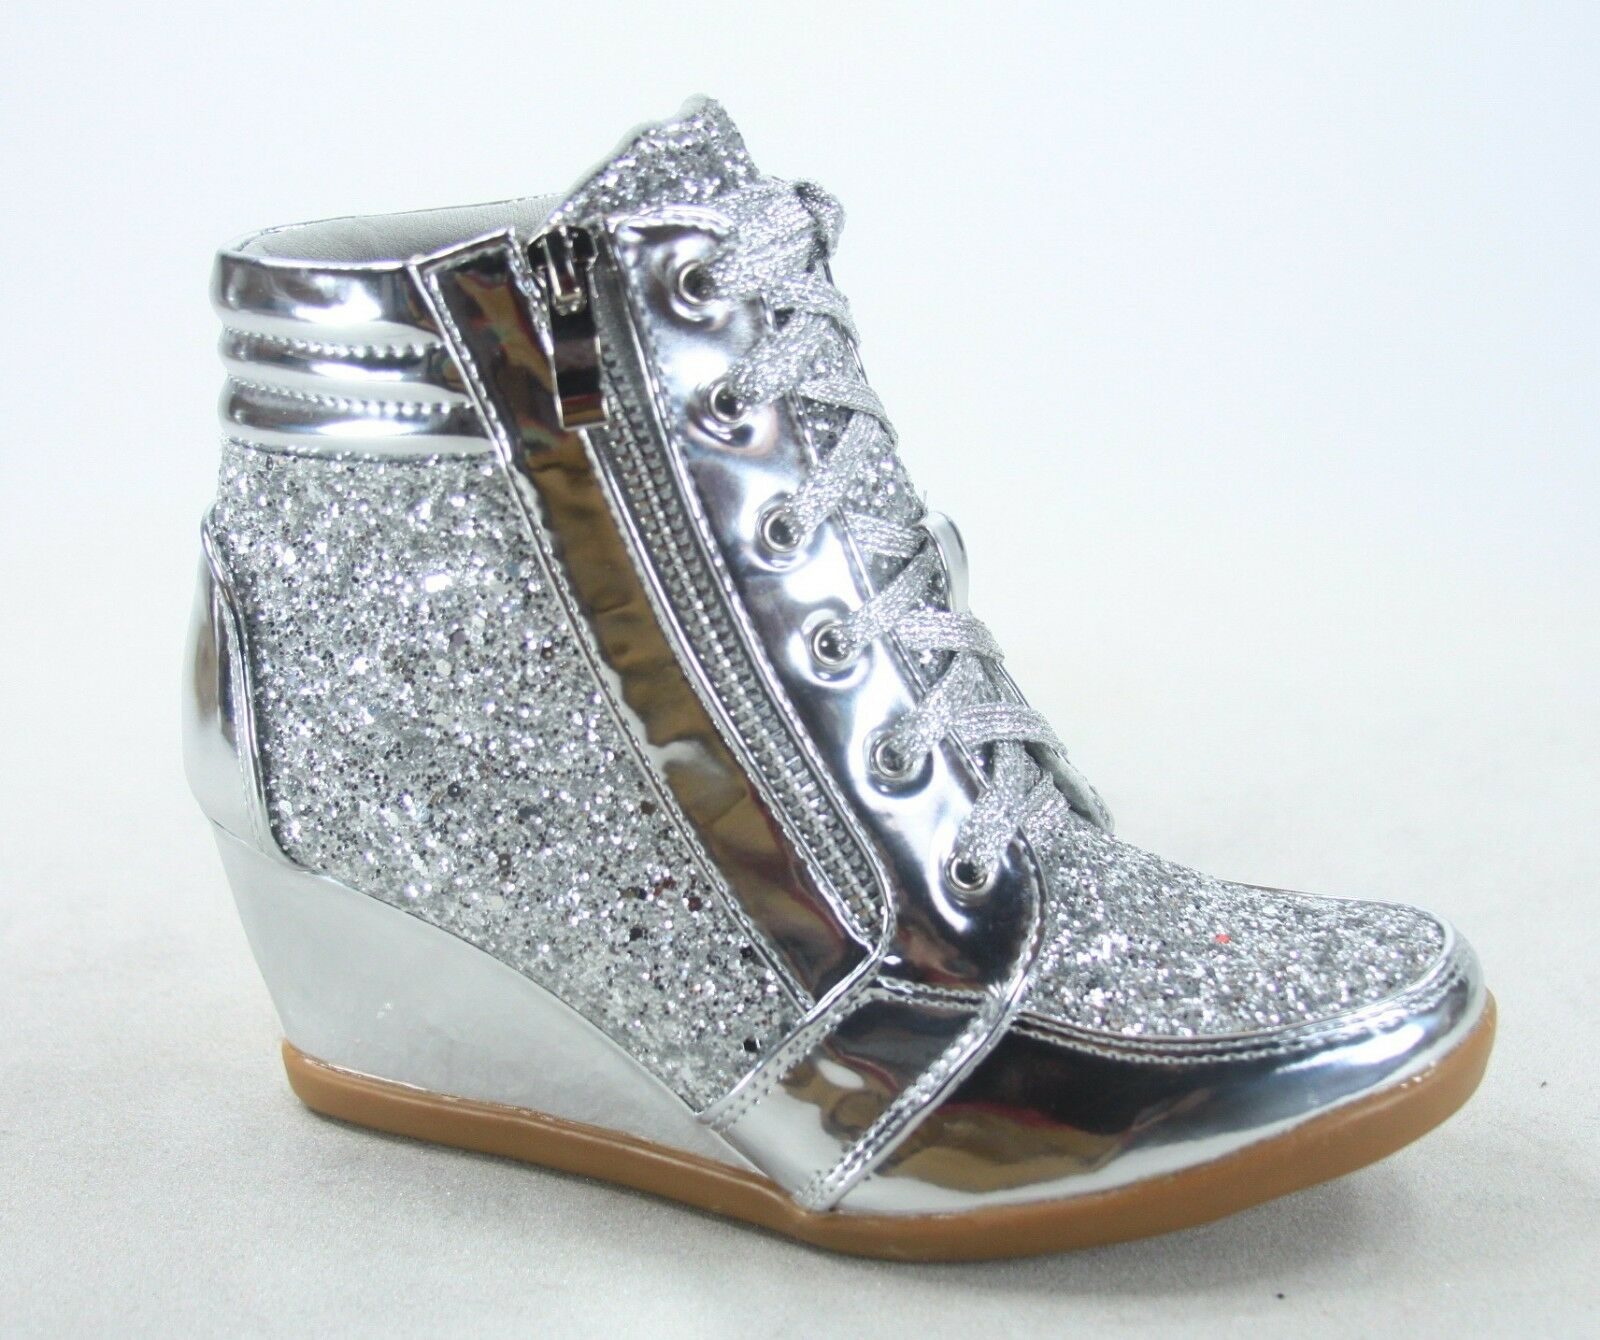 NEW Glitter Sneaker Women's High Top Lace Up Wedge Booties Shoes Size 5.5 - 10